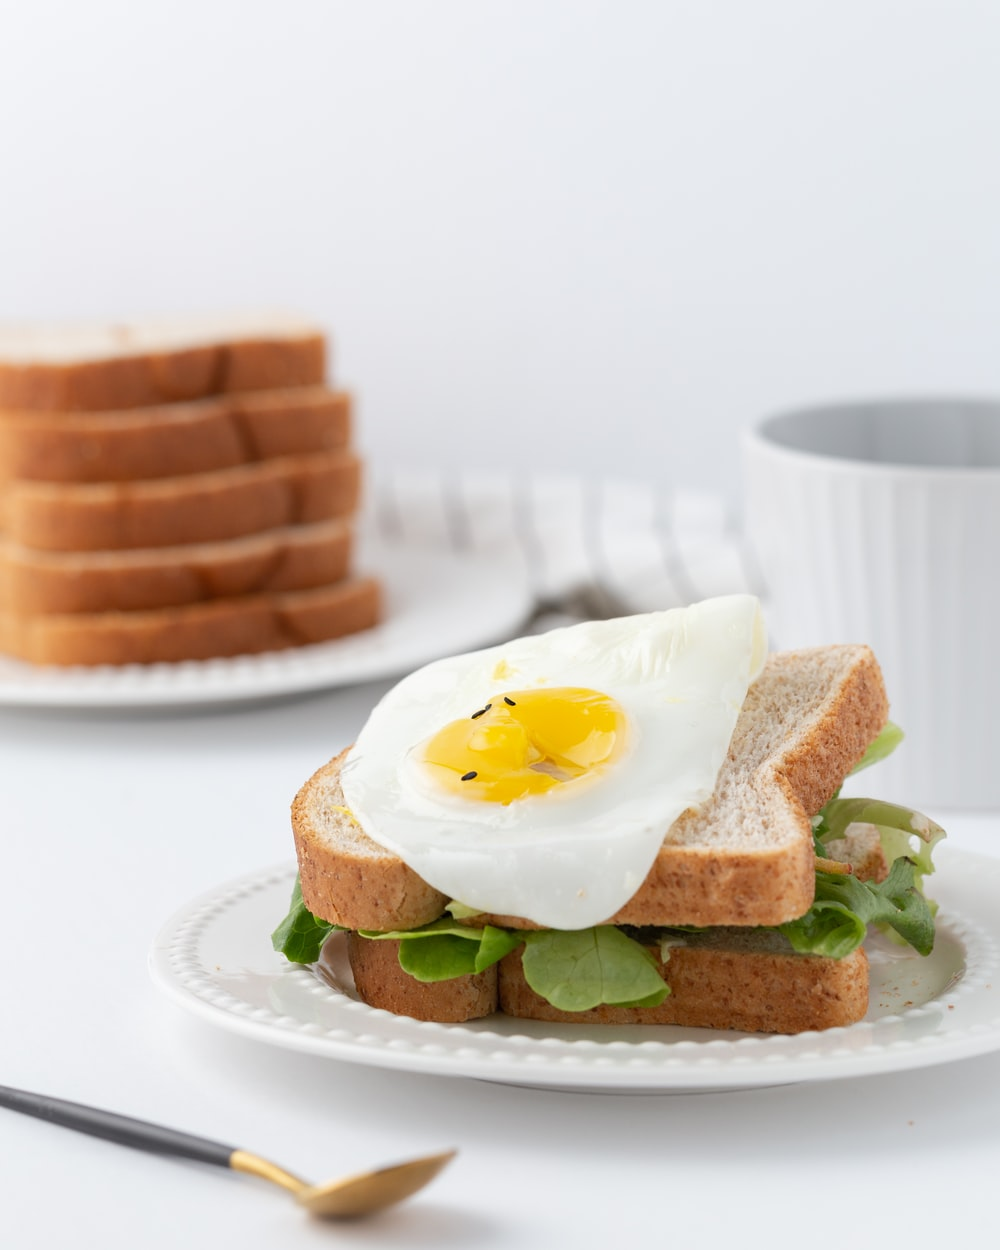 leaf vegetable with bread and egg